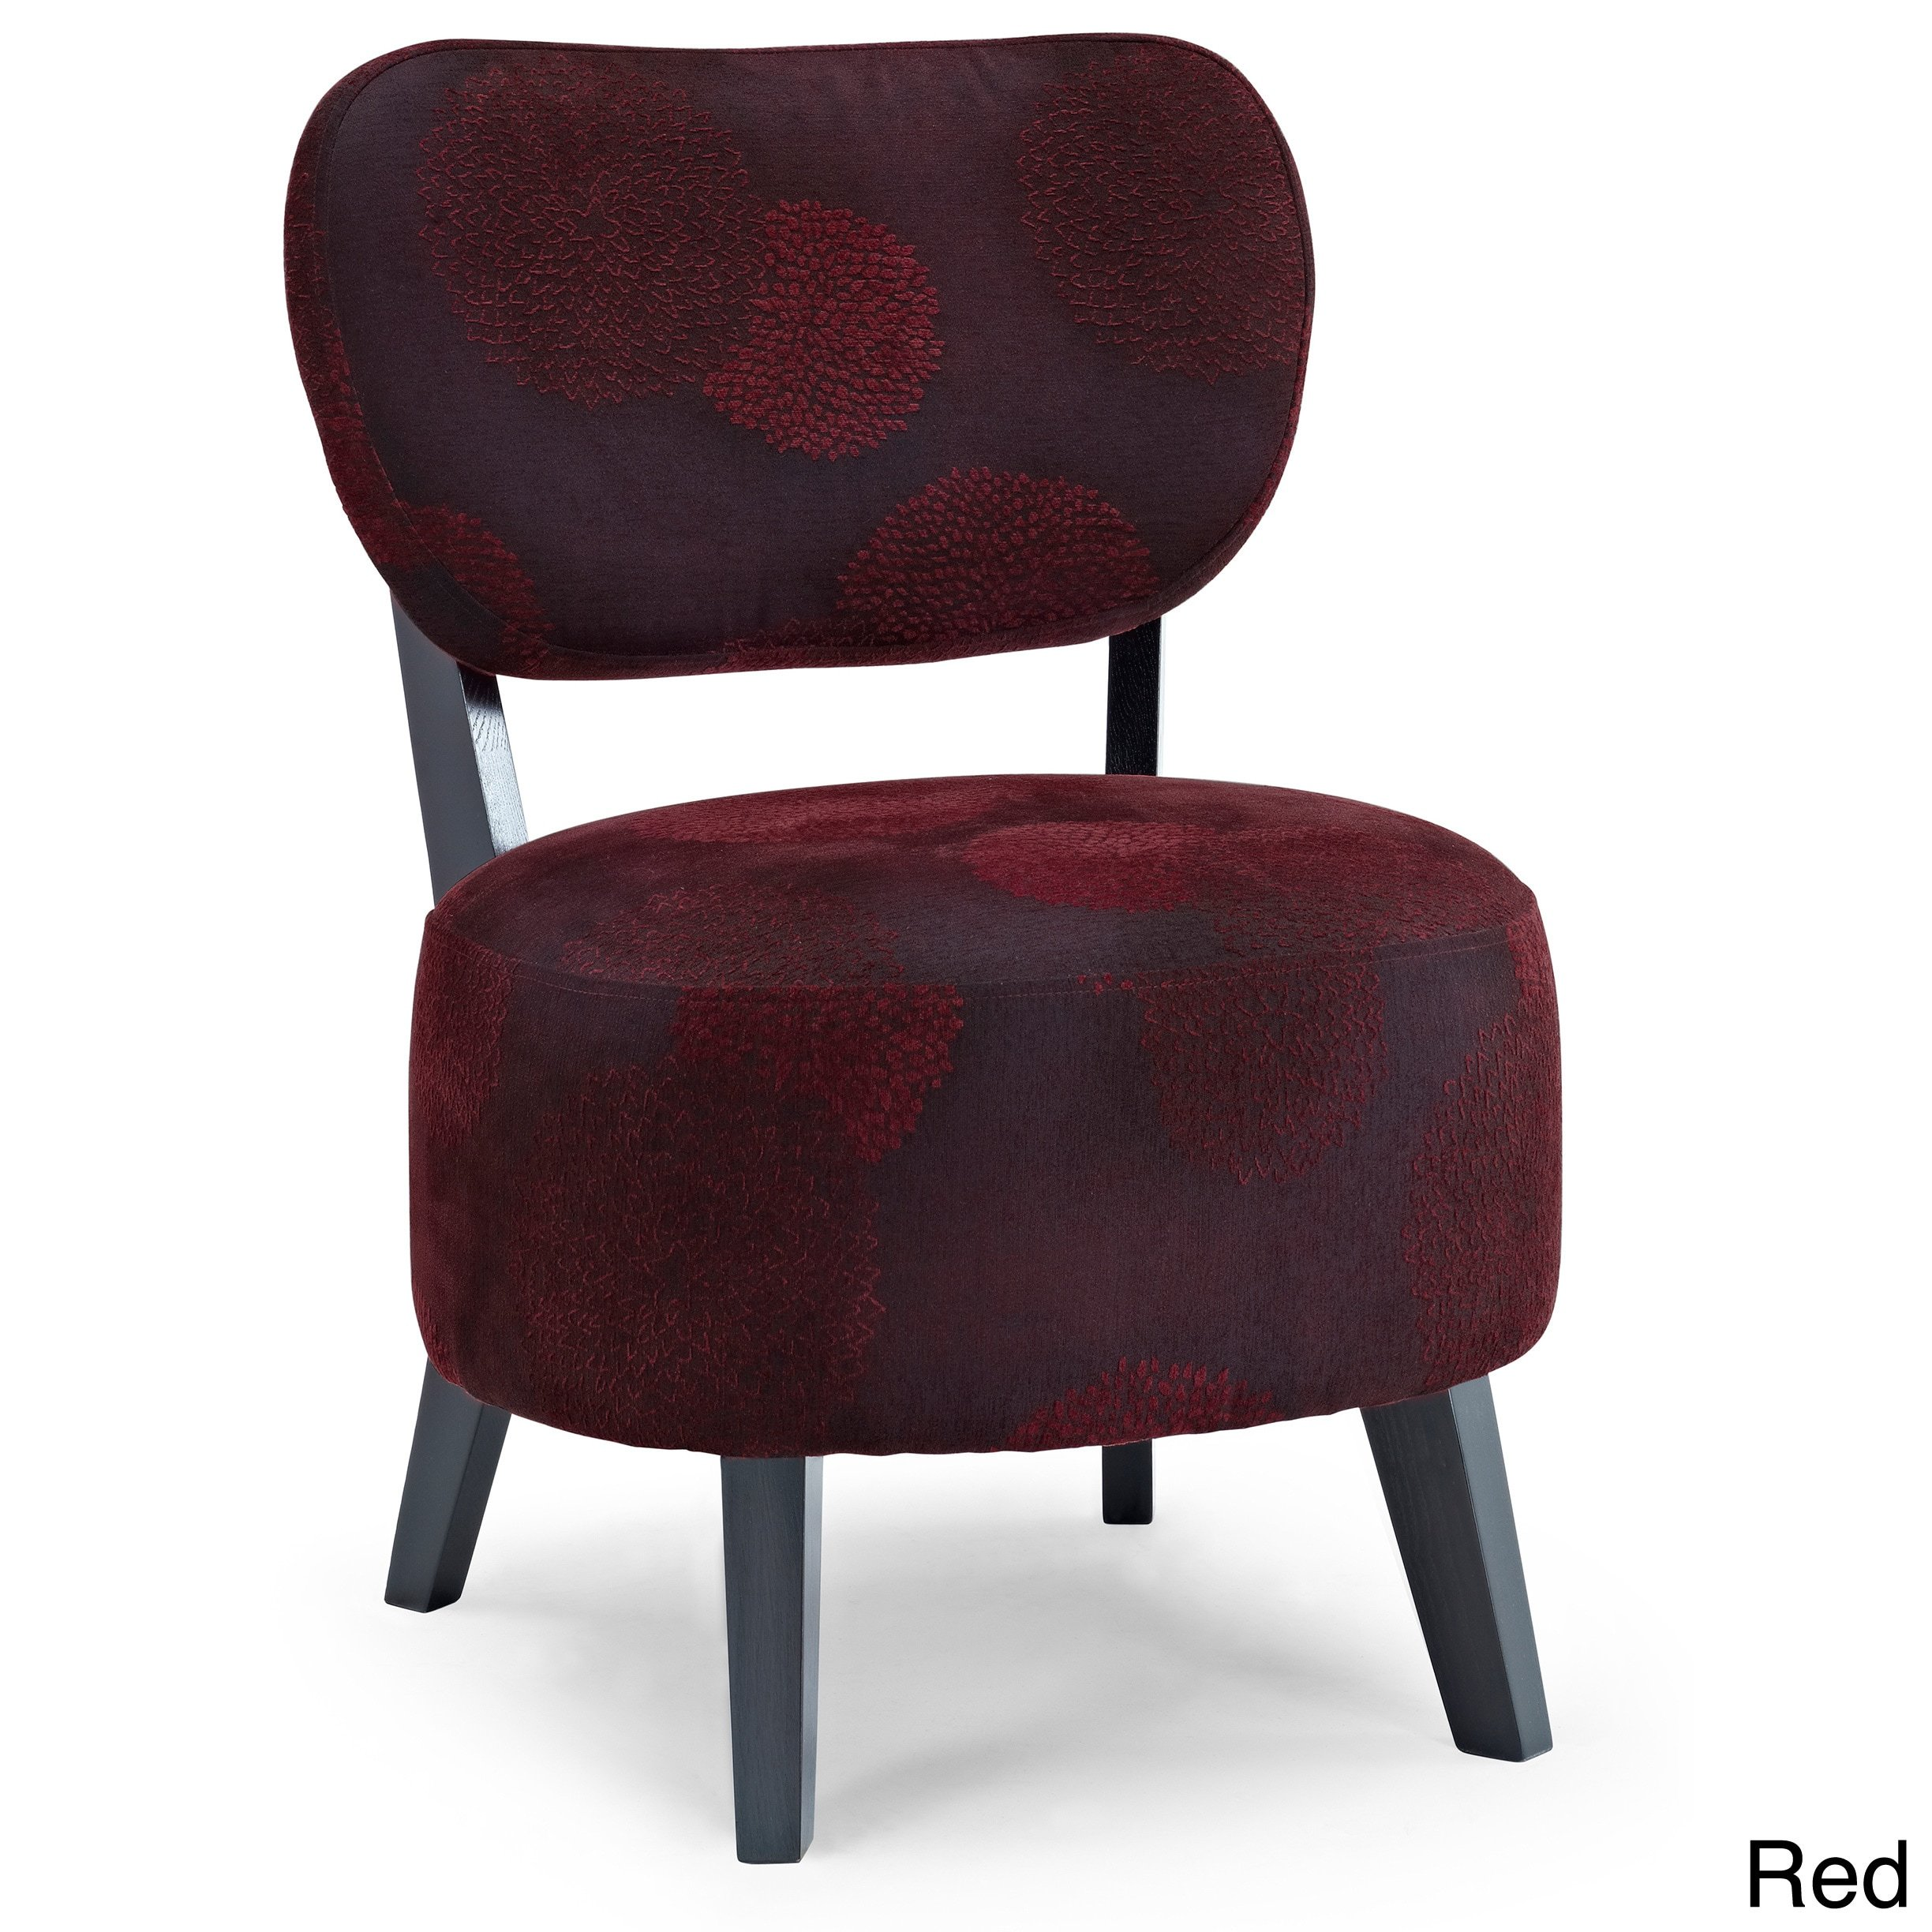 Cheap Red Floral Chair Find Red Floral Chair Deals On